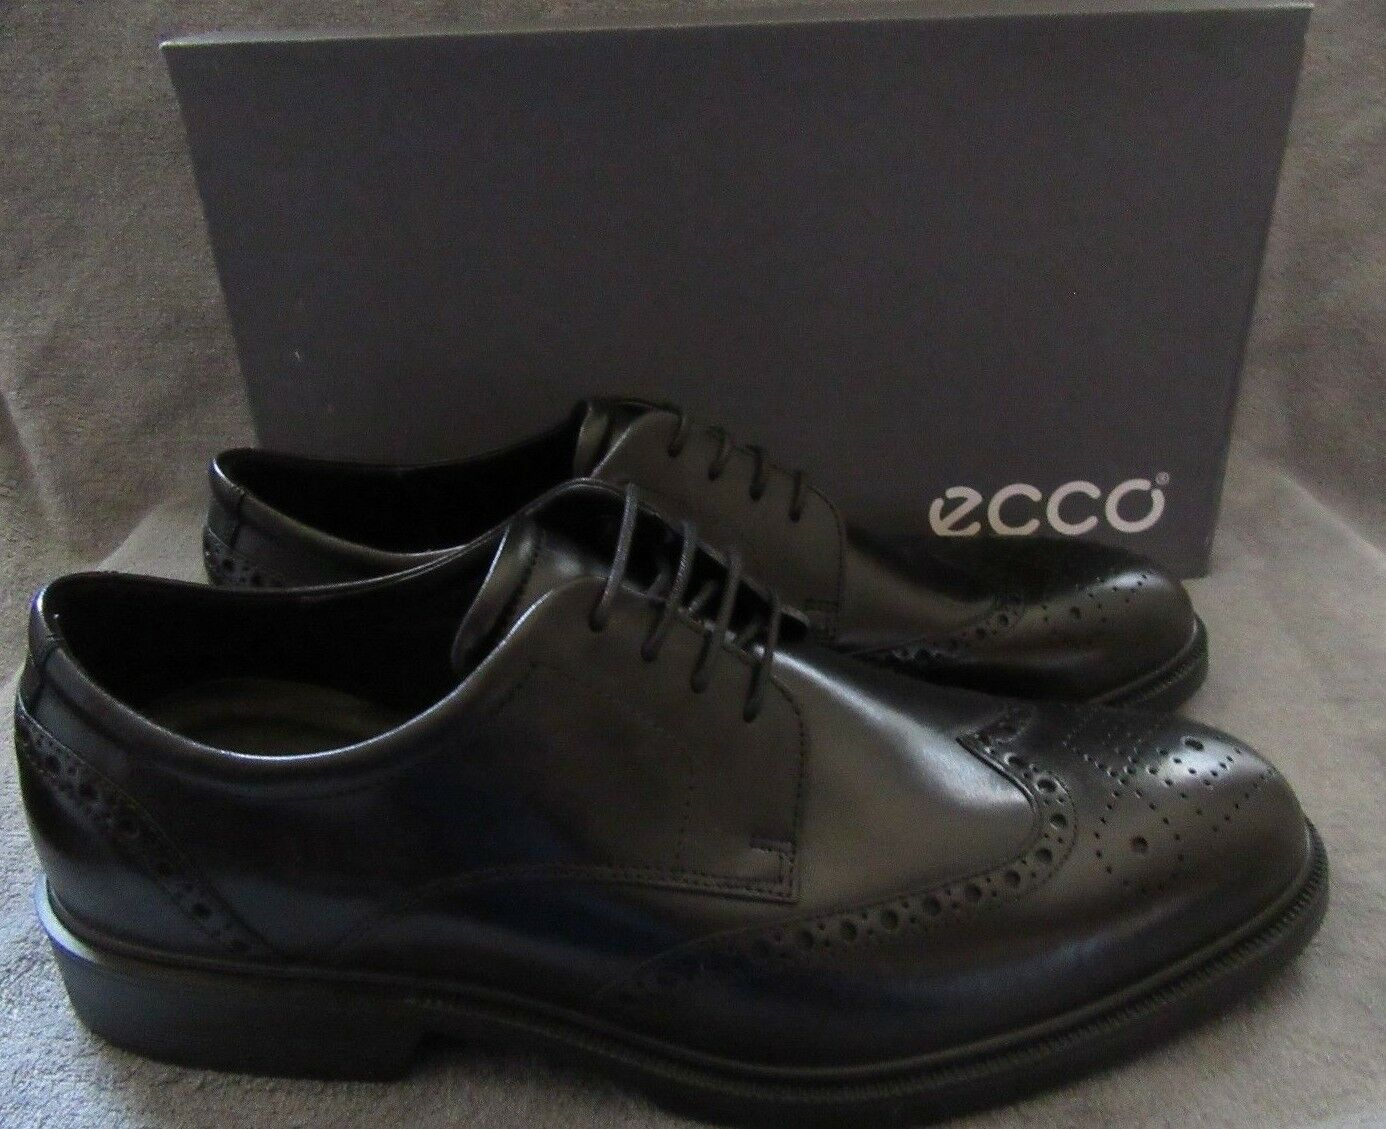 ECCO Mens Helsinki Slip on Bike Toe Lace Leather shoes US 11 - 11.5 M EUR 45 NWB